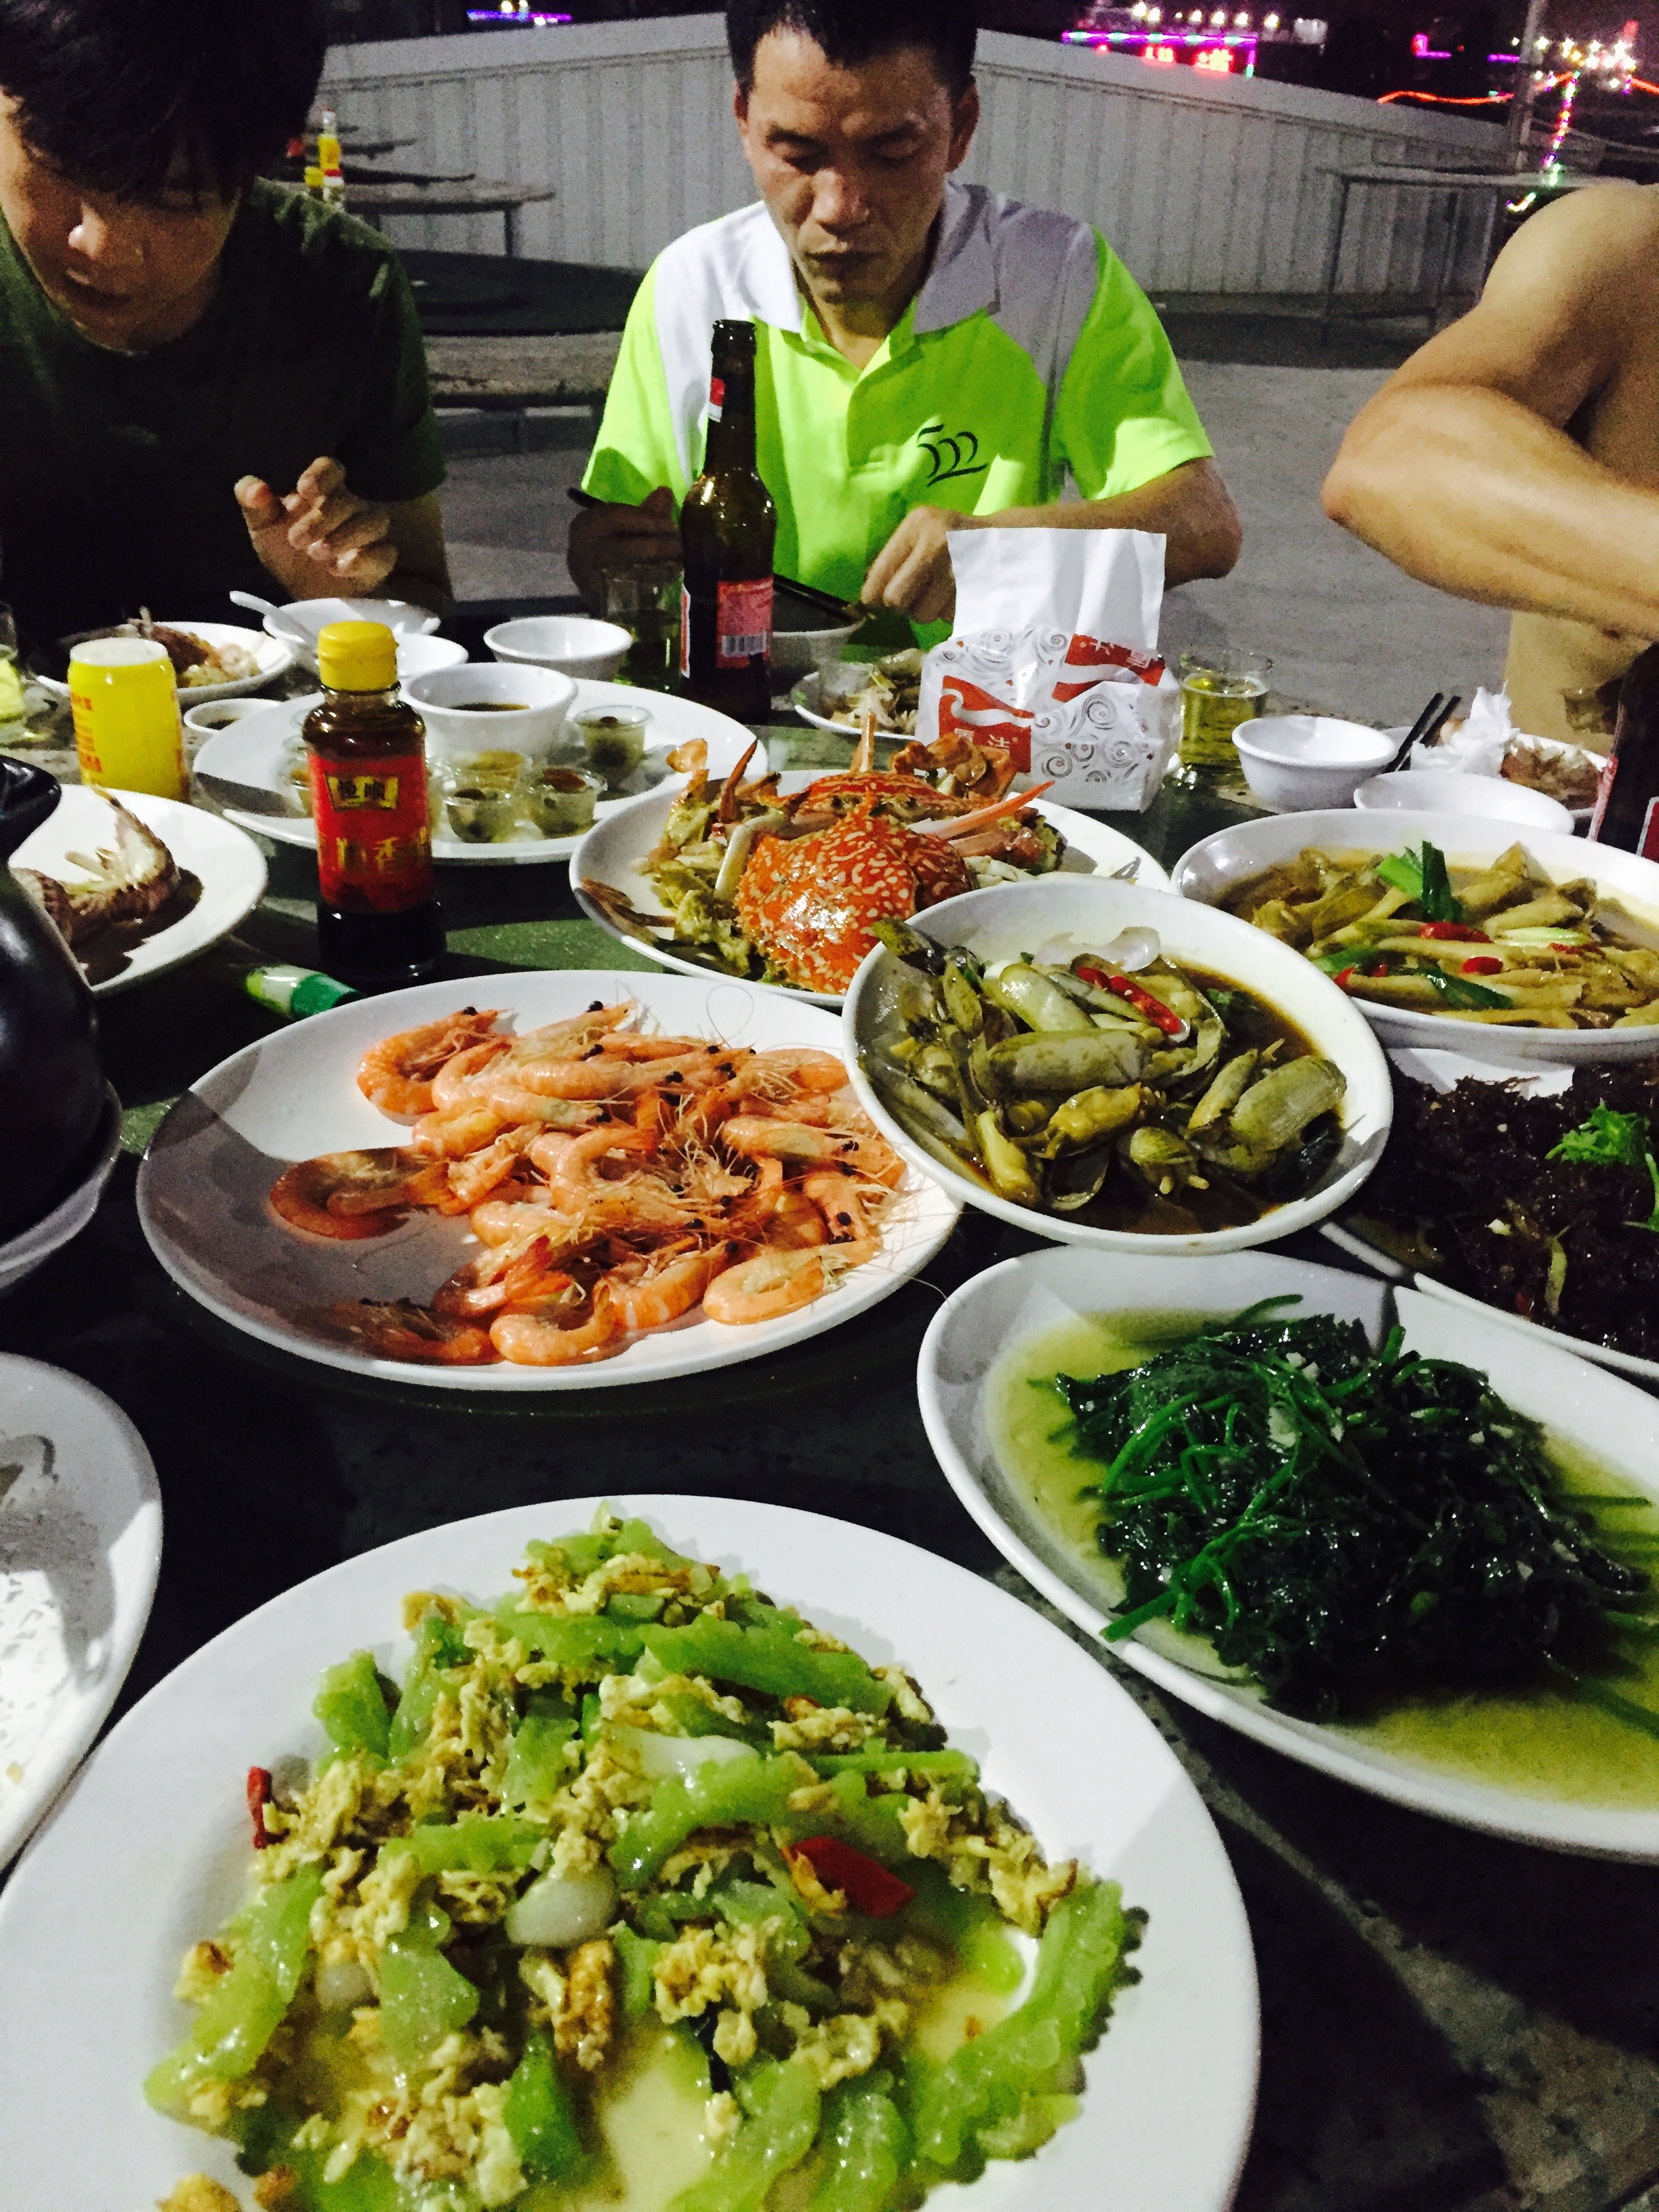 Classic Xiamen seafood dinner. Unfortunately seafood isn't my favorite to eat. My coach keot piling crayfish and stuff on my plate being a polite Chinese host. I had to yell at him to stop because I knew I didn't want to eat it, haha.